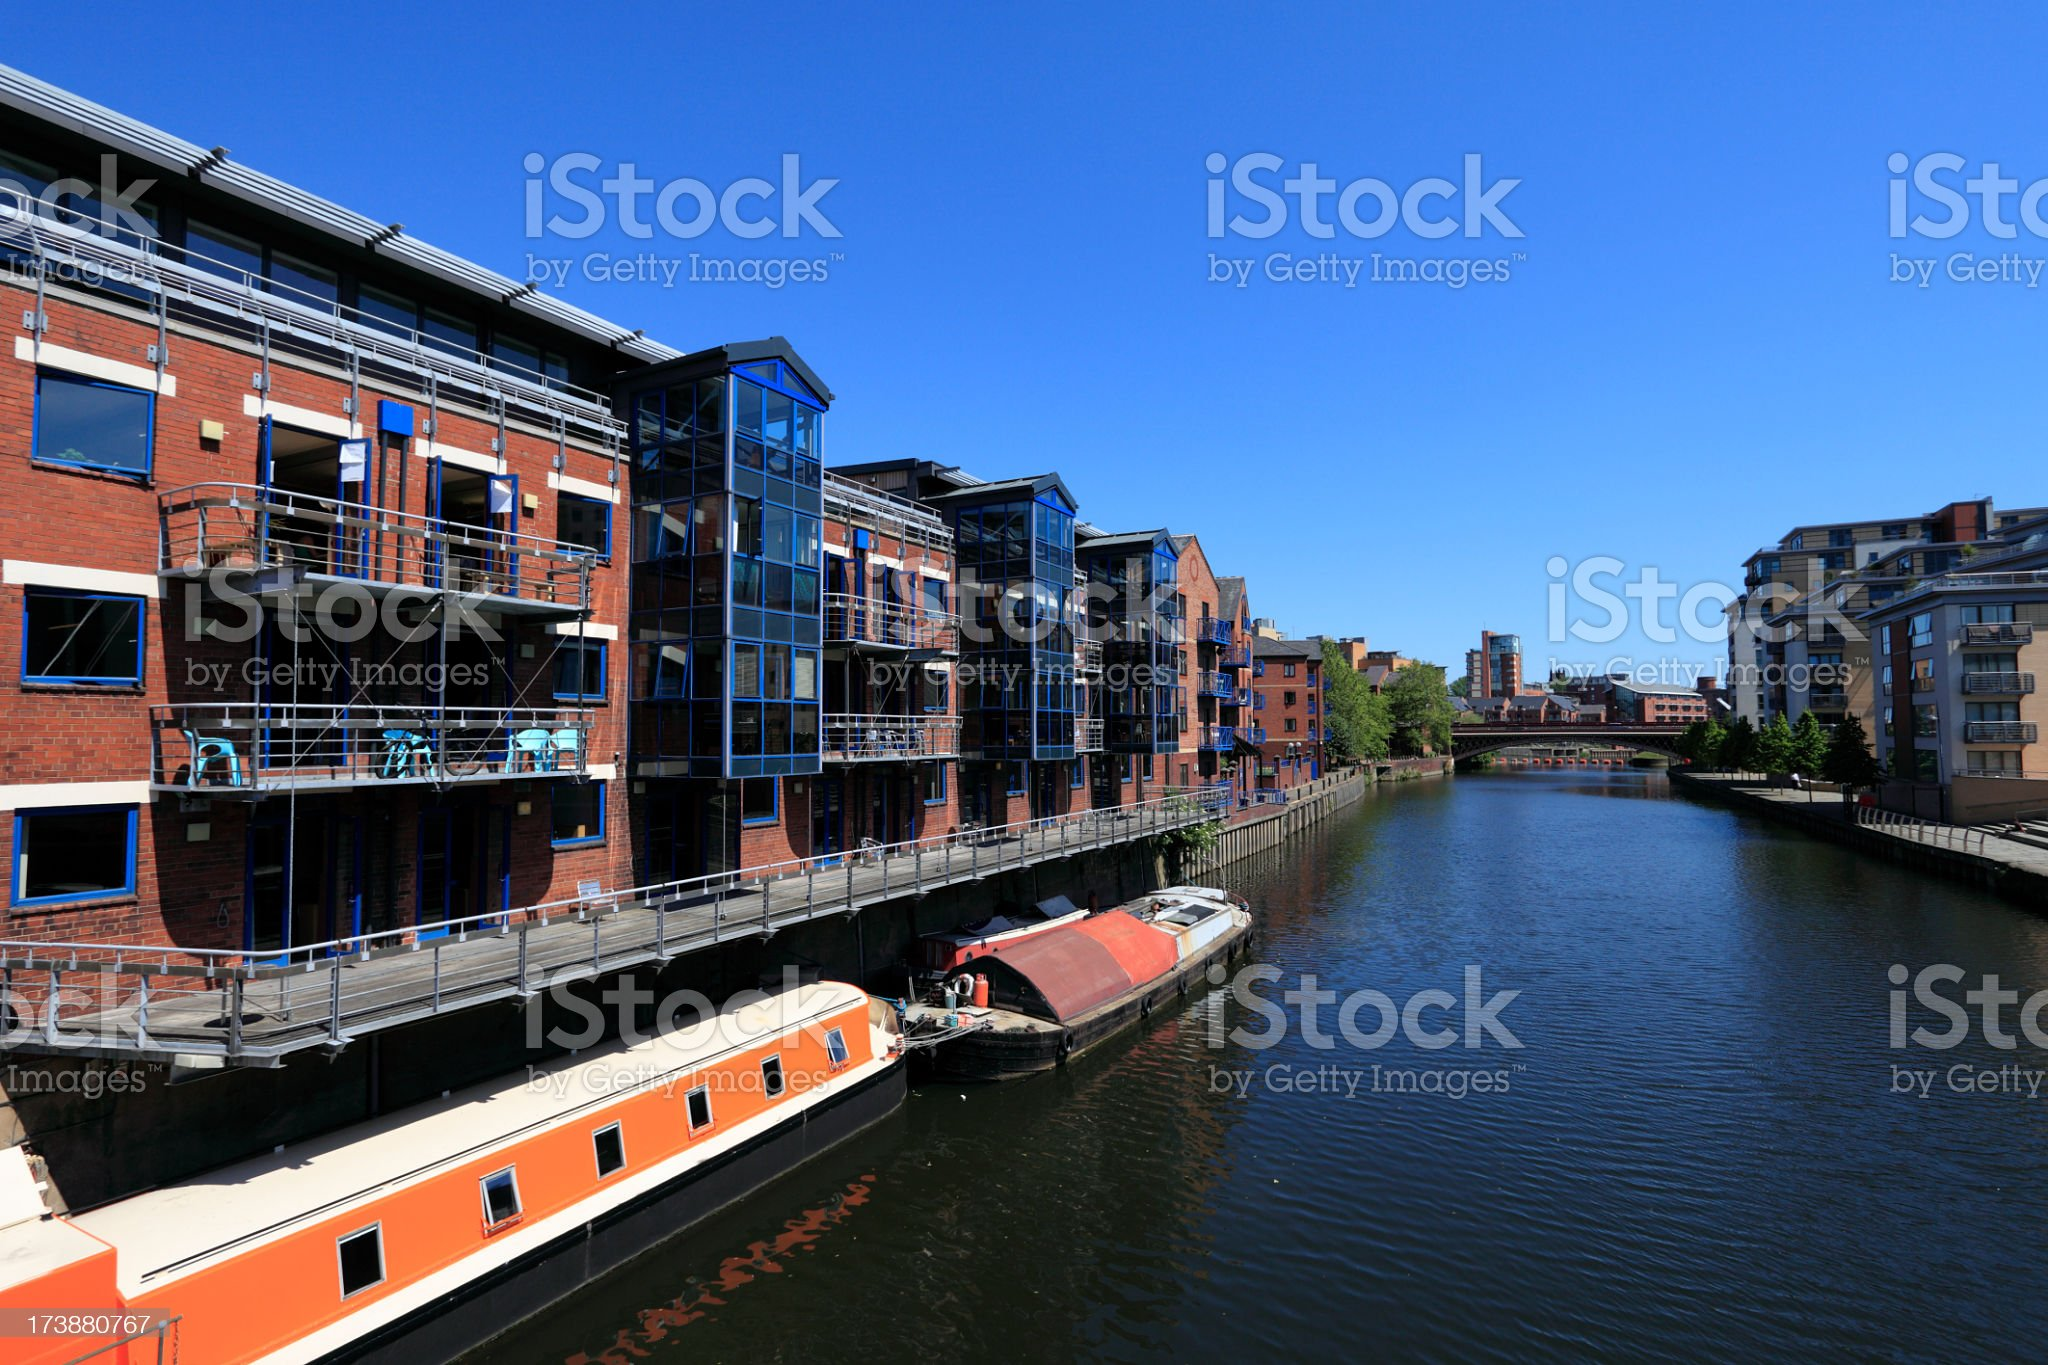 Riverside apartments royalty-free stock photo